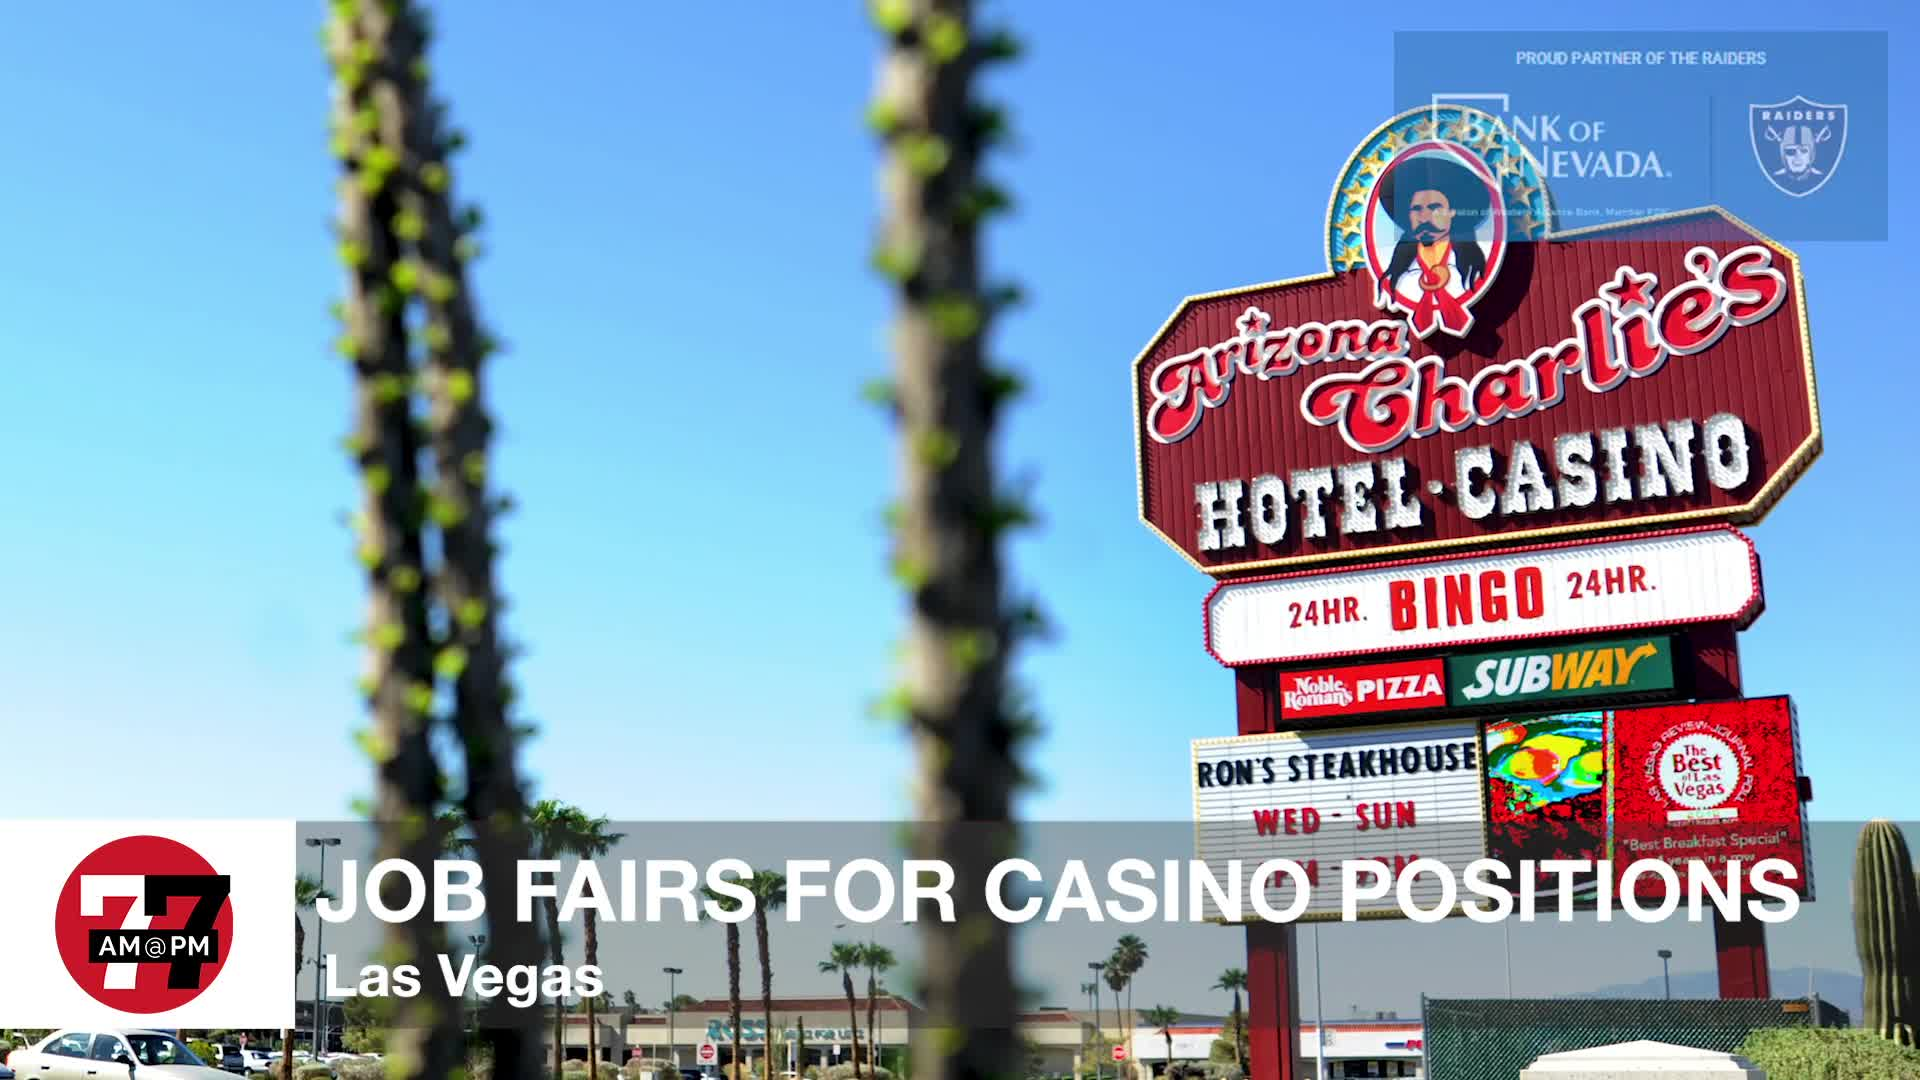 7@7PM Job Fairs For Casino Positions